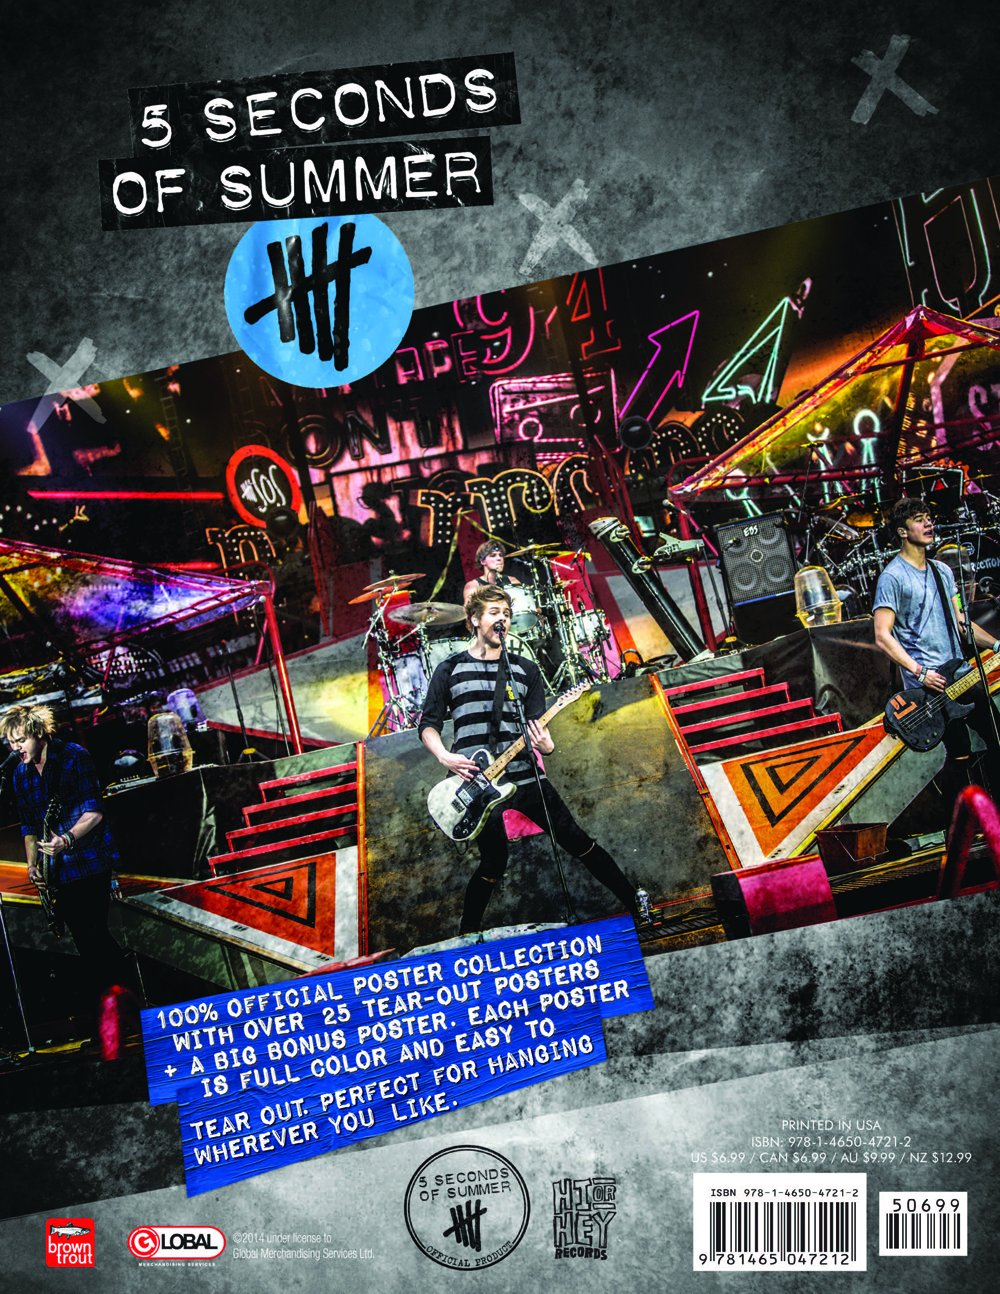 5sos poster design - 5 Seconds Of Summer Poster Collection Browntrout Publishers 9781465047212 Amazon Com Books